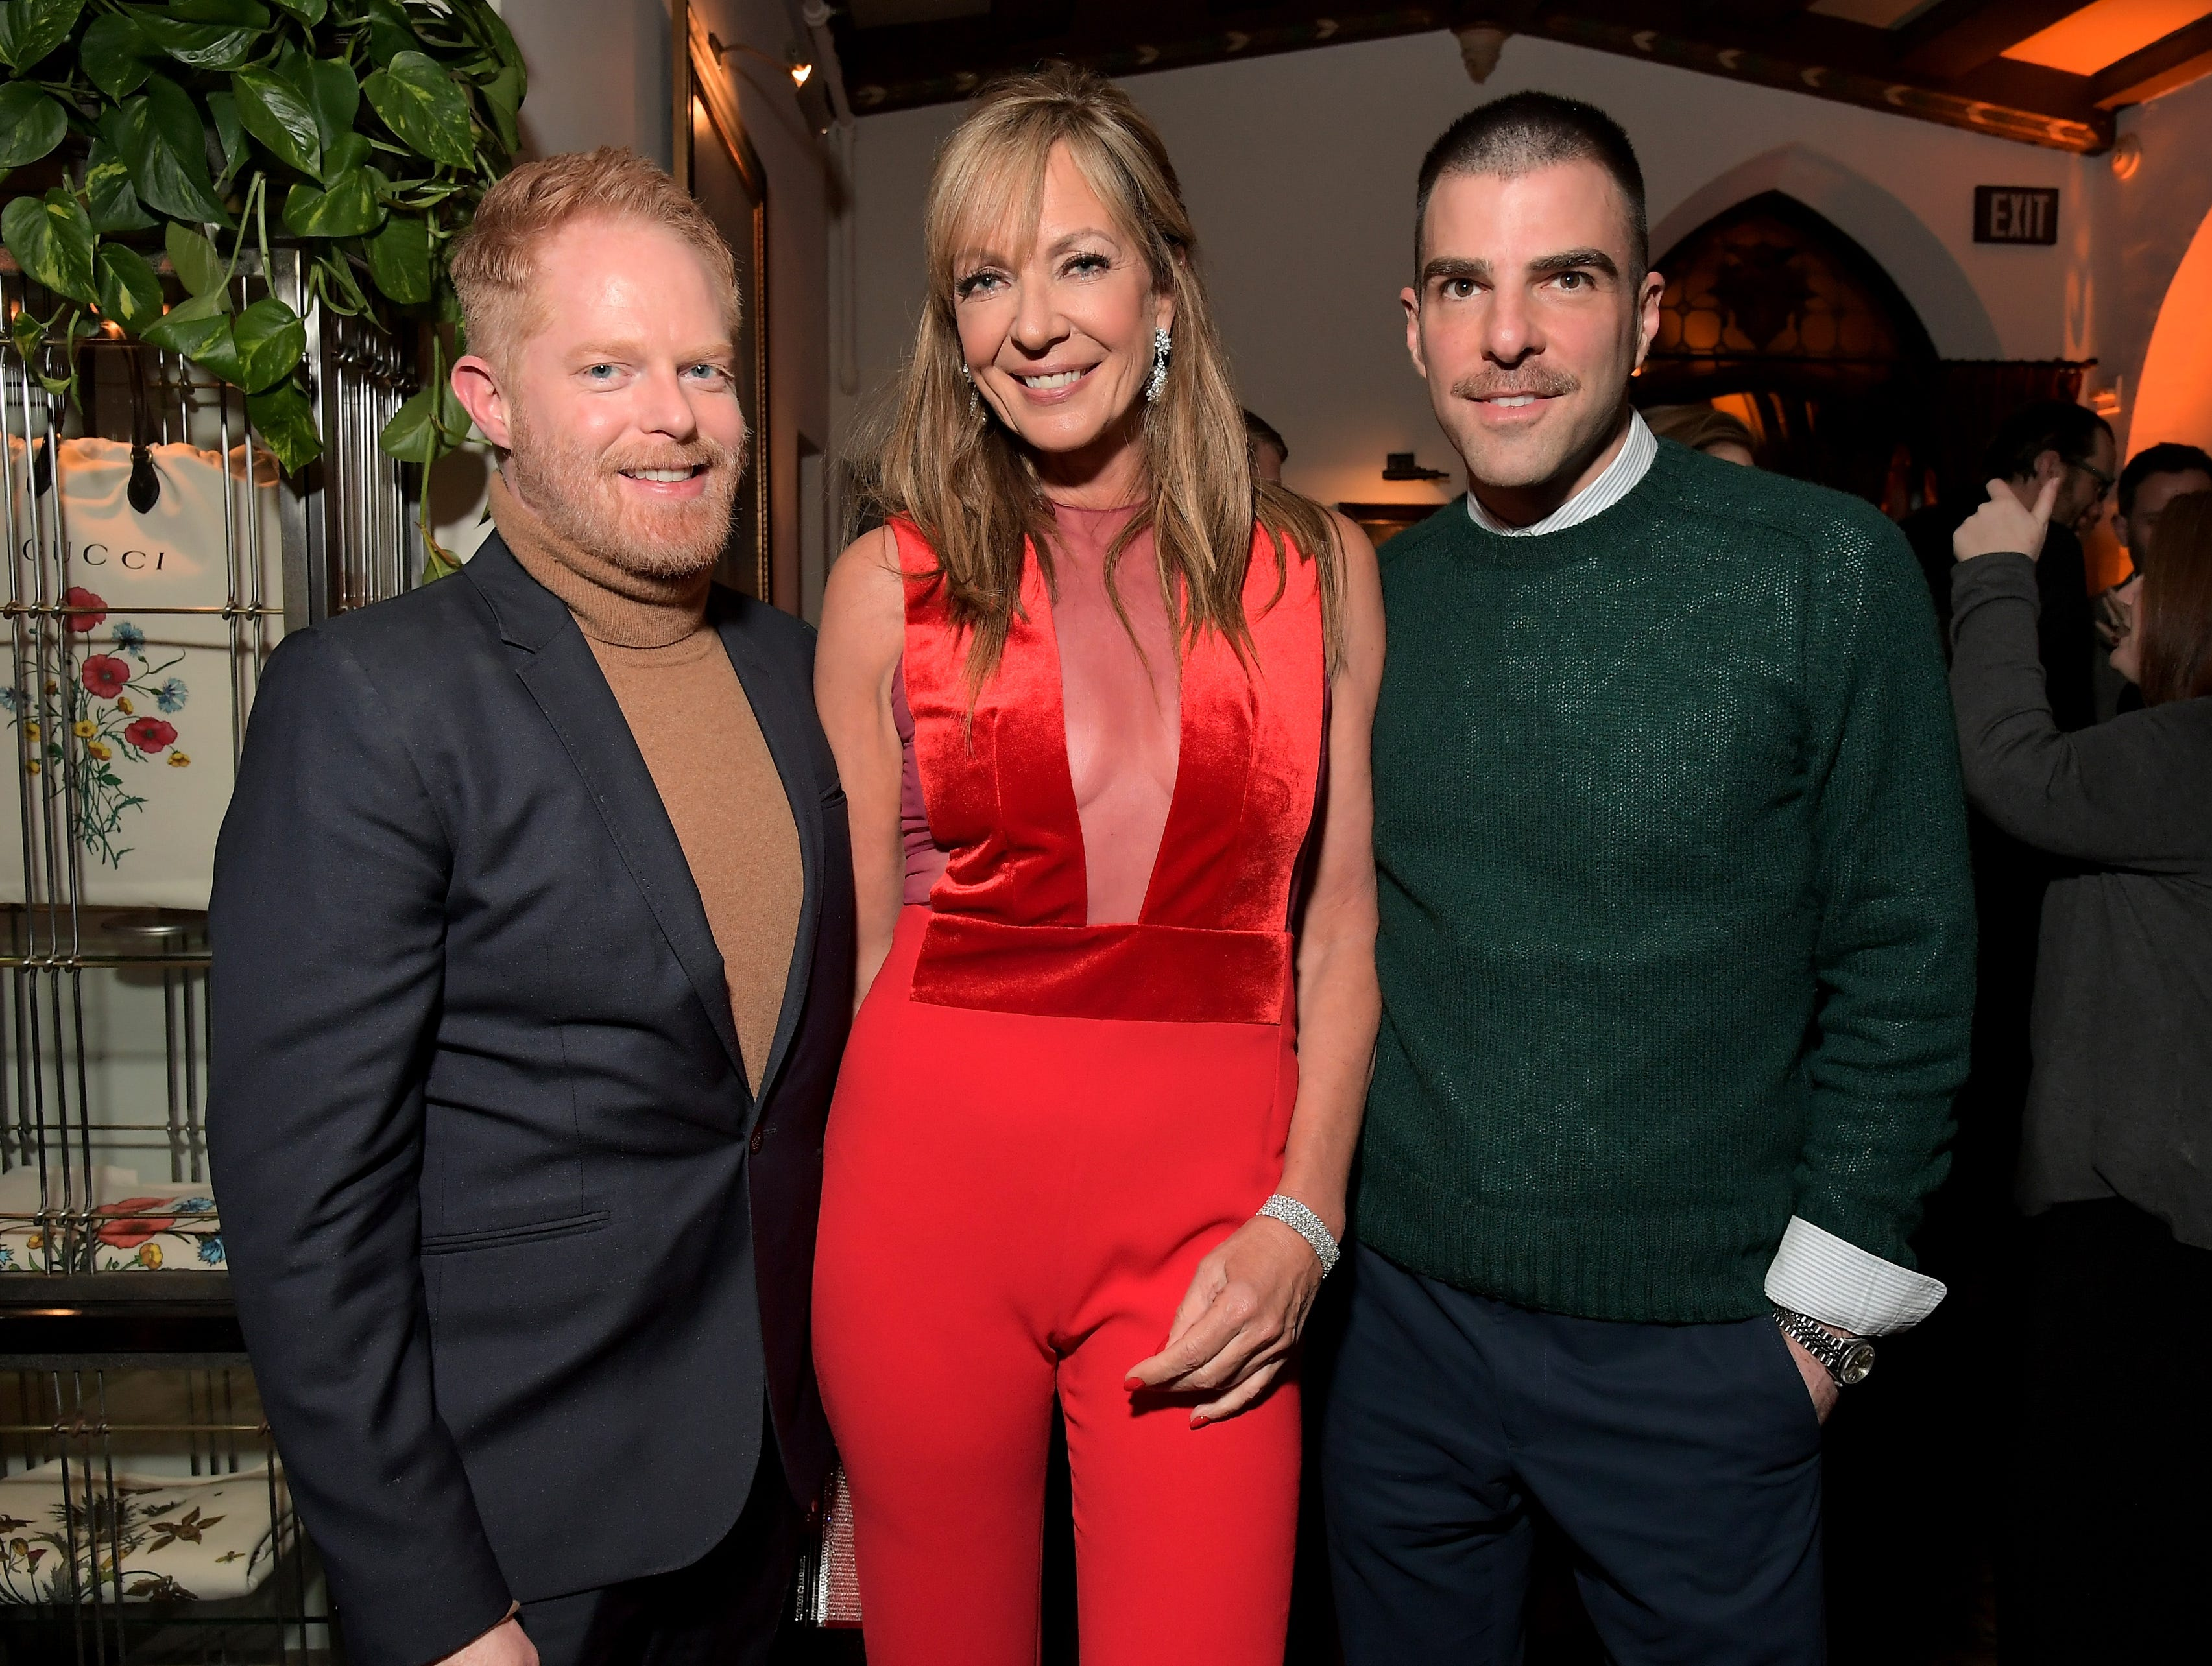 Who knew they were buds? Allison Janney, Jesse Tyler Ferguson, and Zachary Quinto hit Cadillac Oscar Week Celebration.